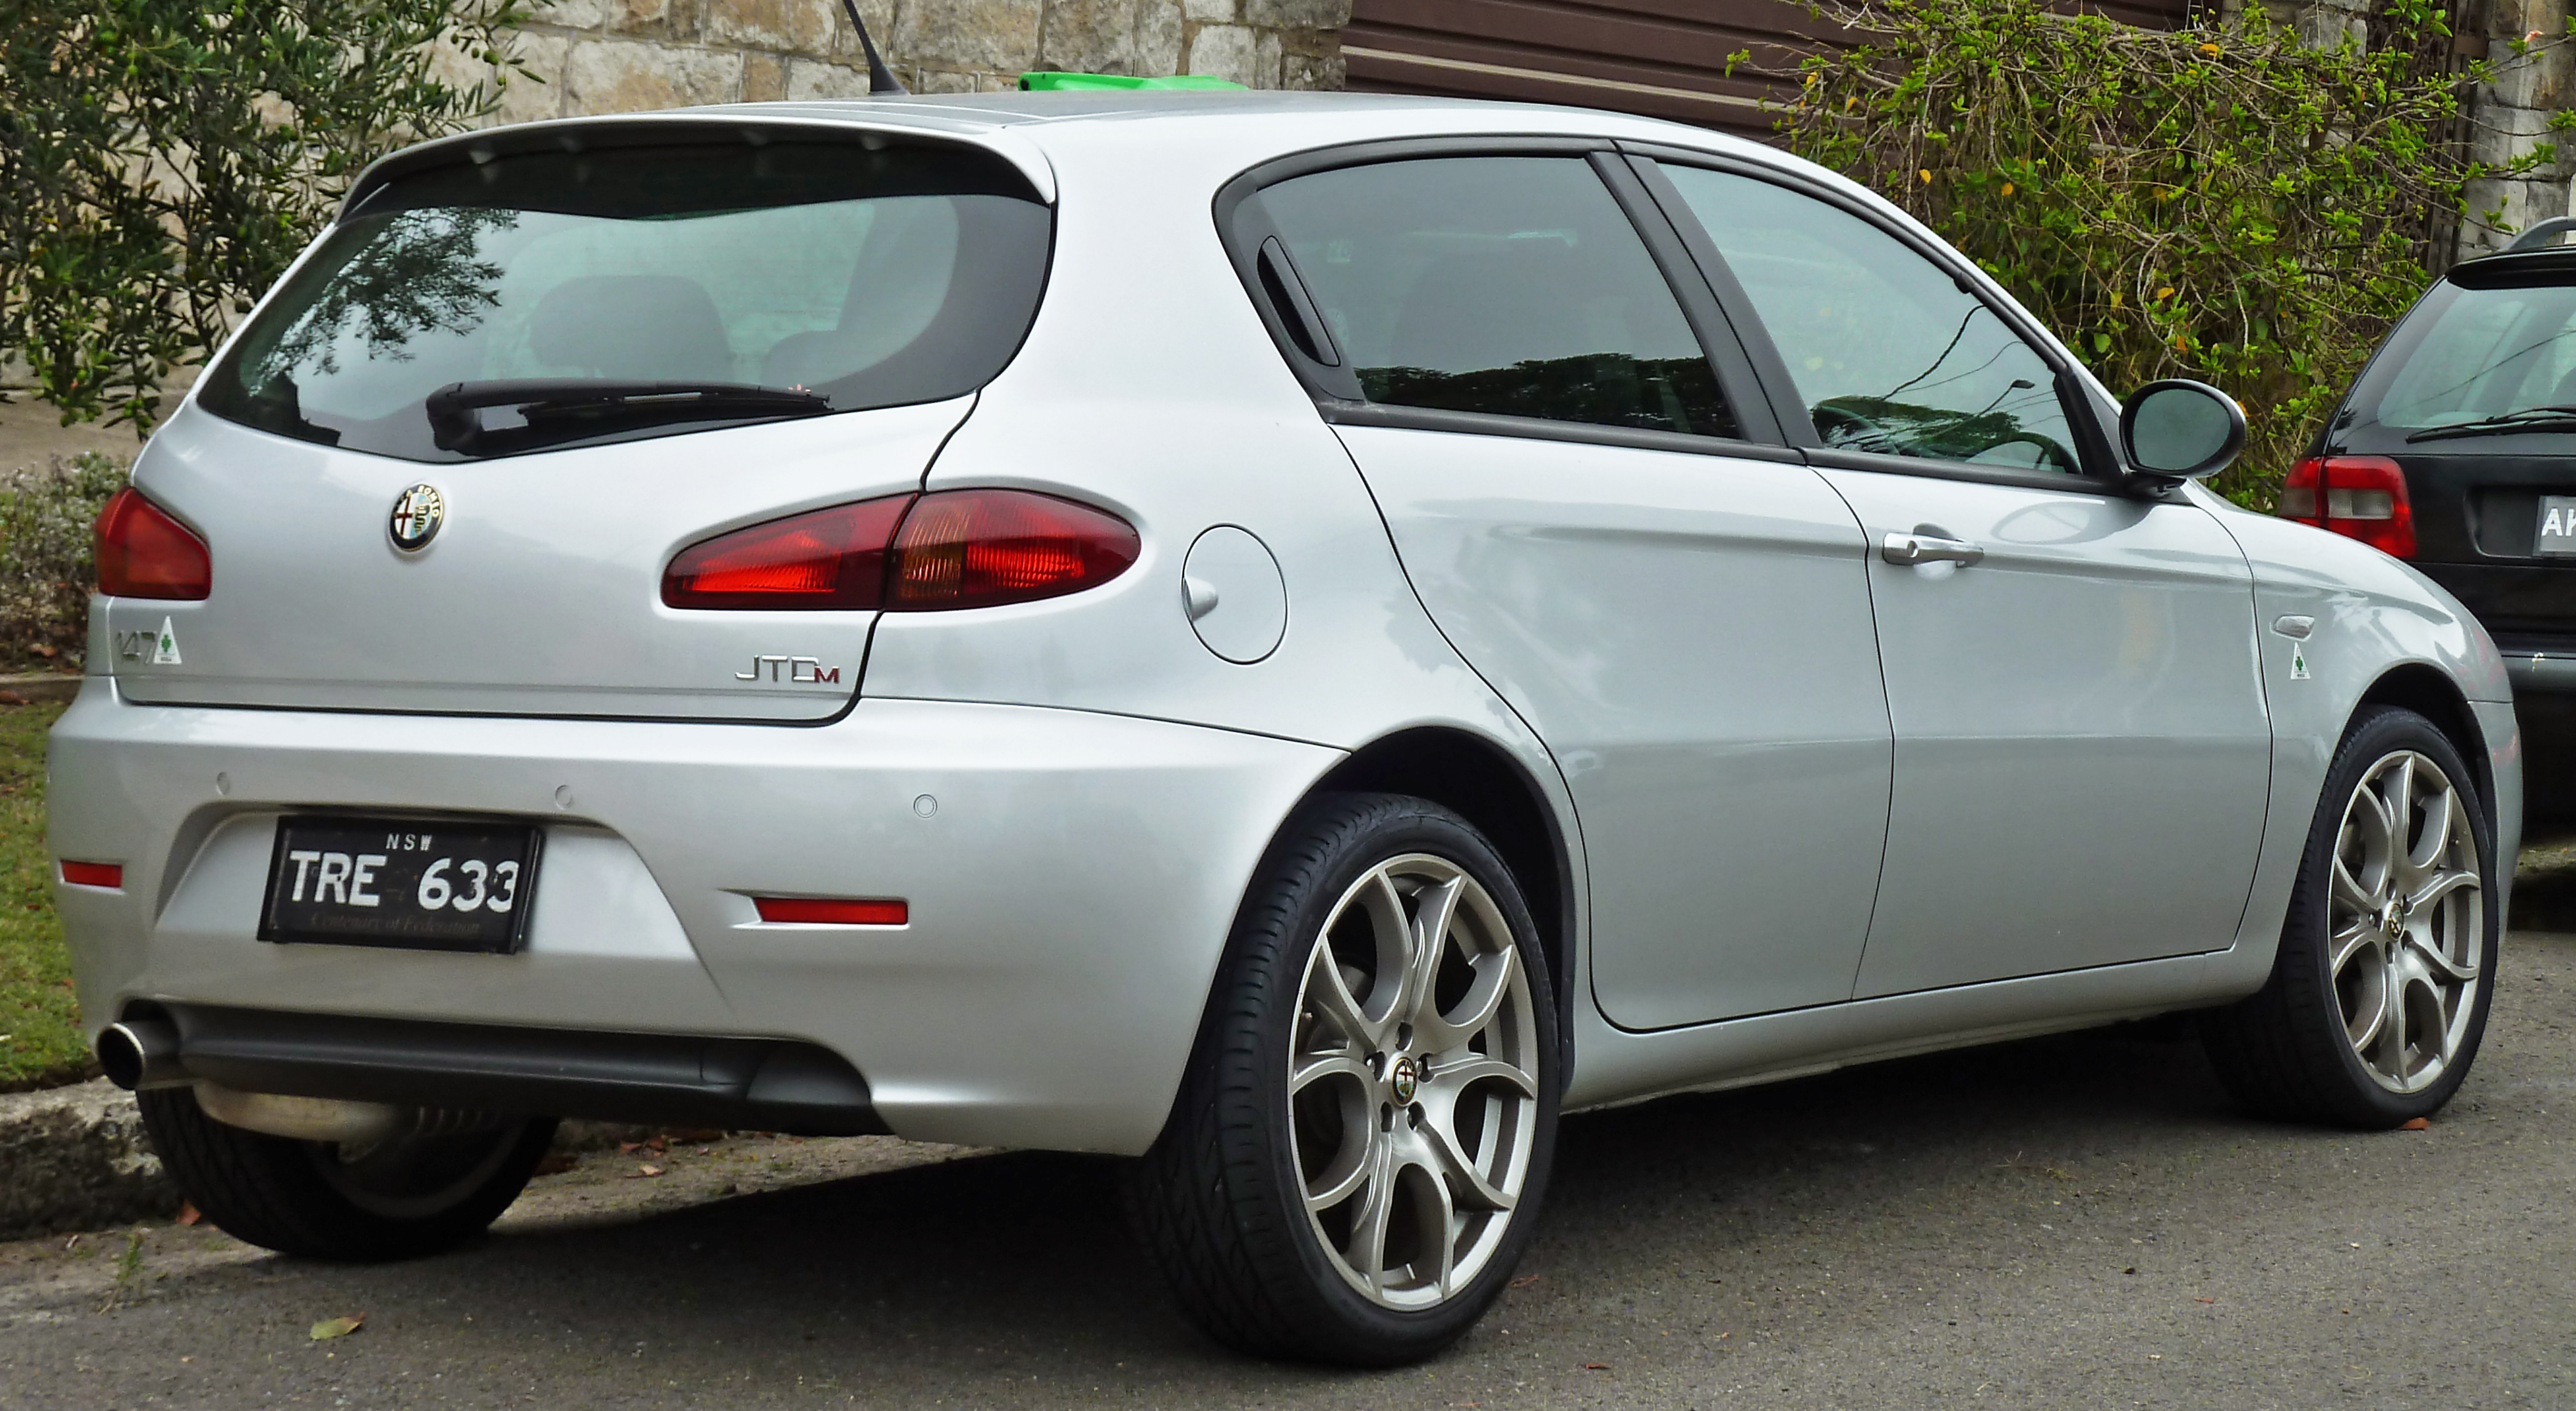 2008 Alfa Romeo 147 TI photo - 2